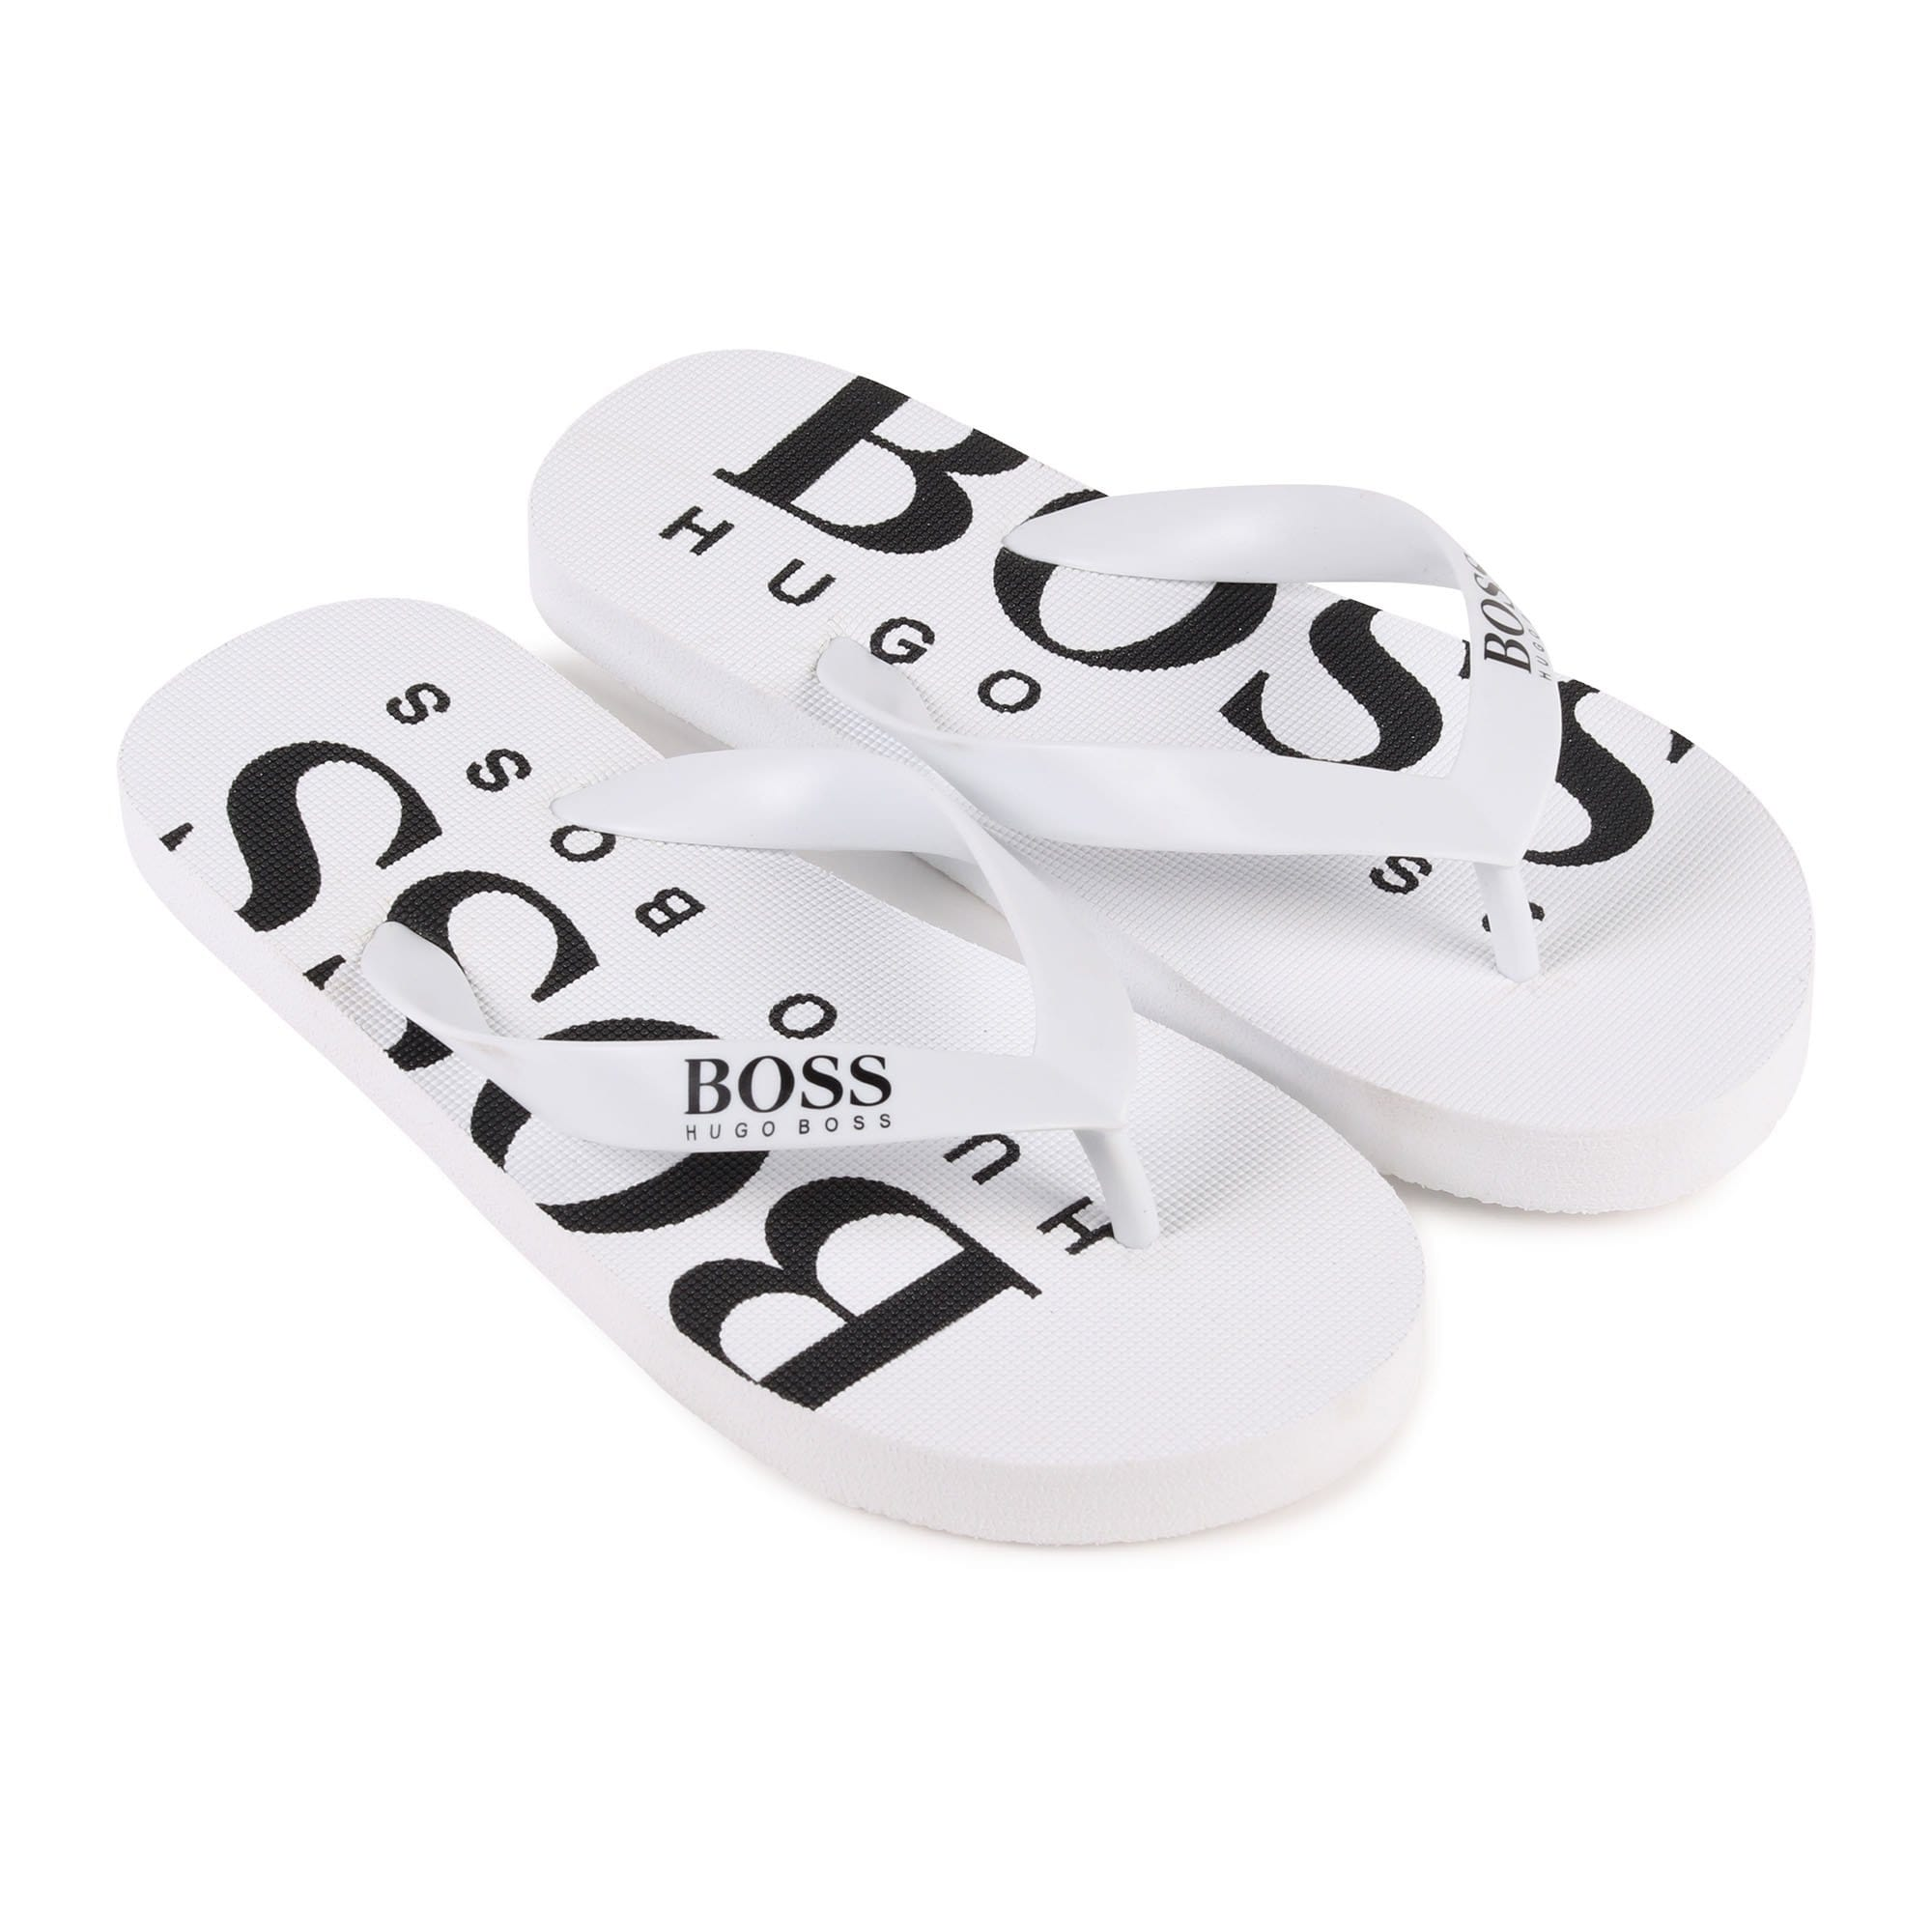 Hugo Boss Thongs White J29198/10B